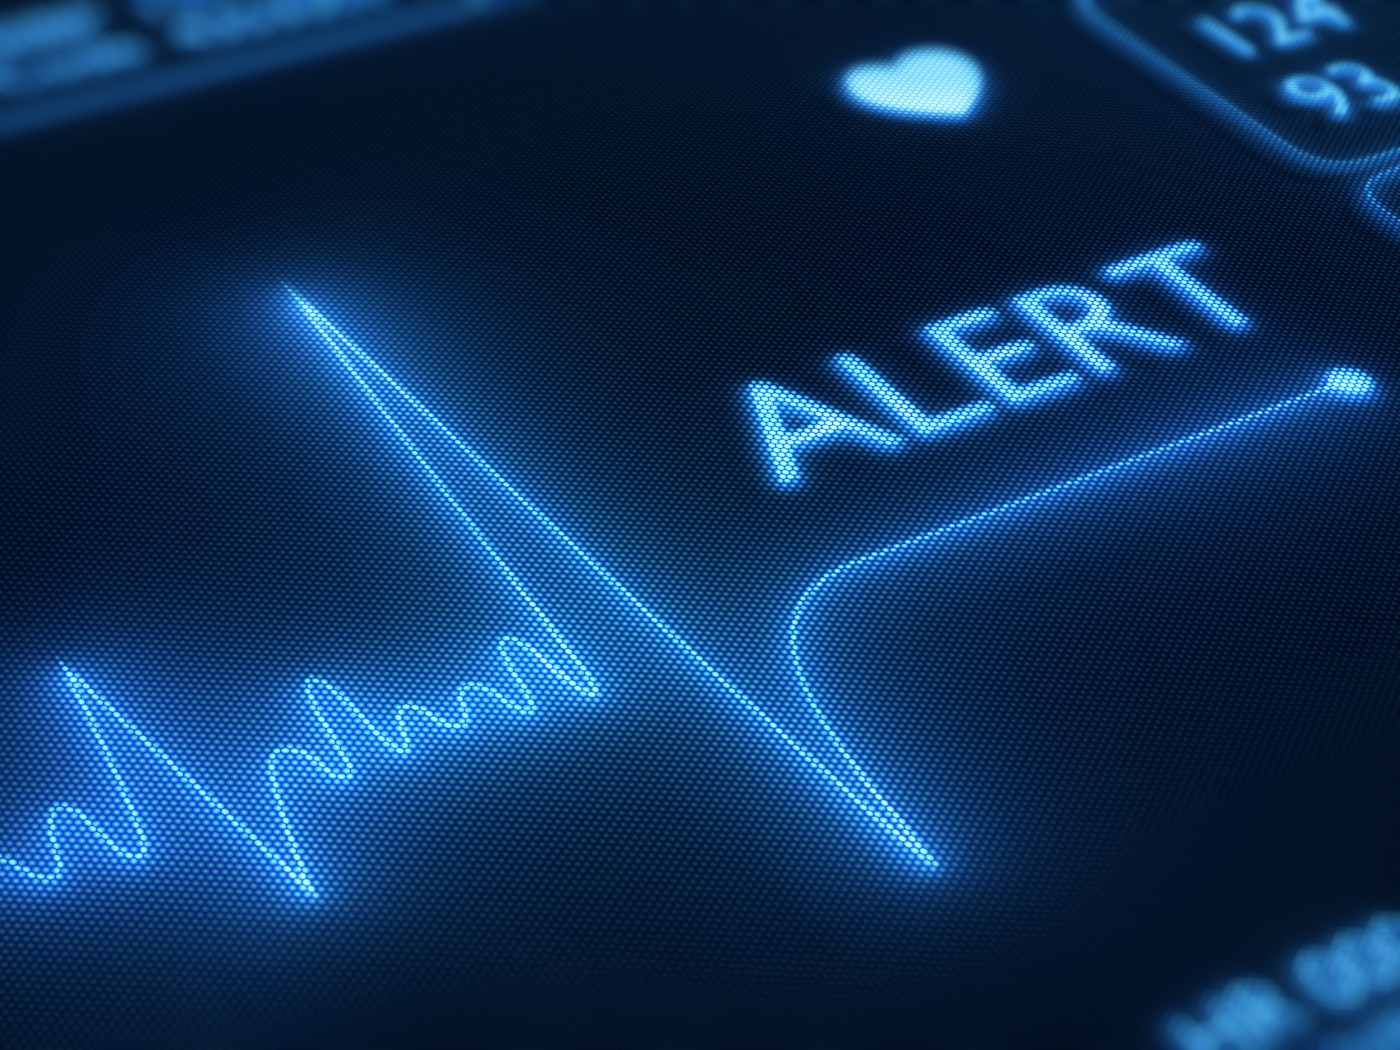 Heart Failure Patients at Increased Risk of Re-hospitalization or Death After Discharge